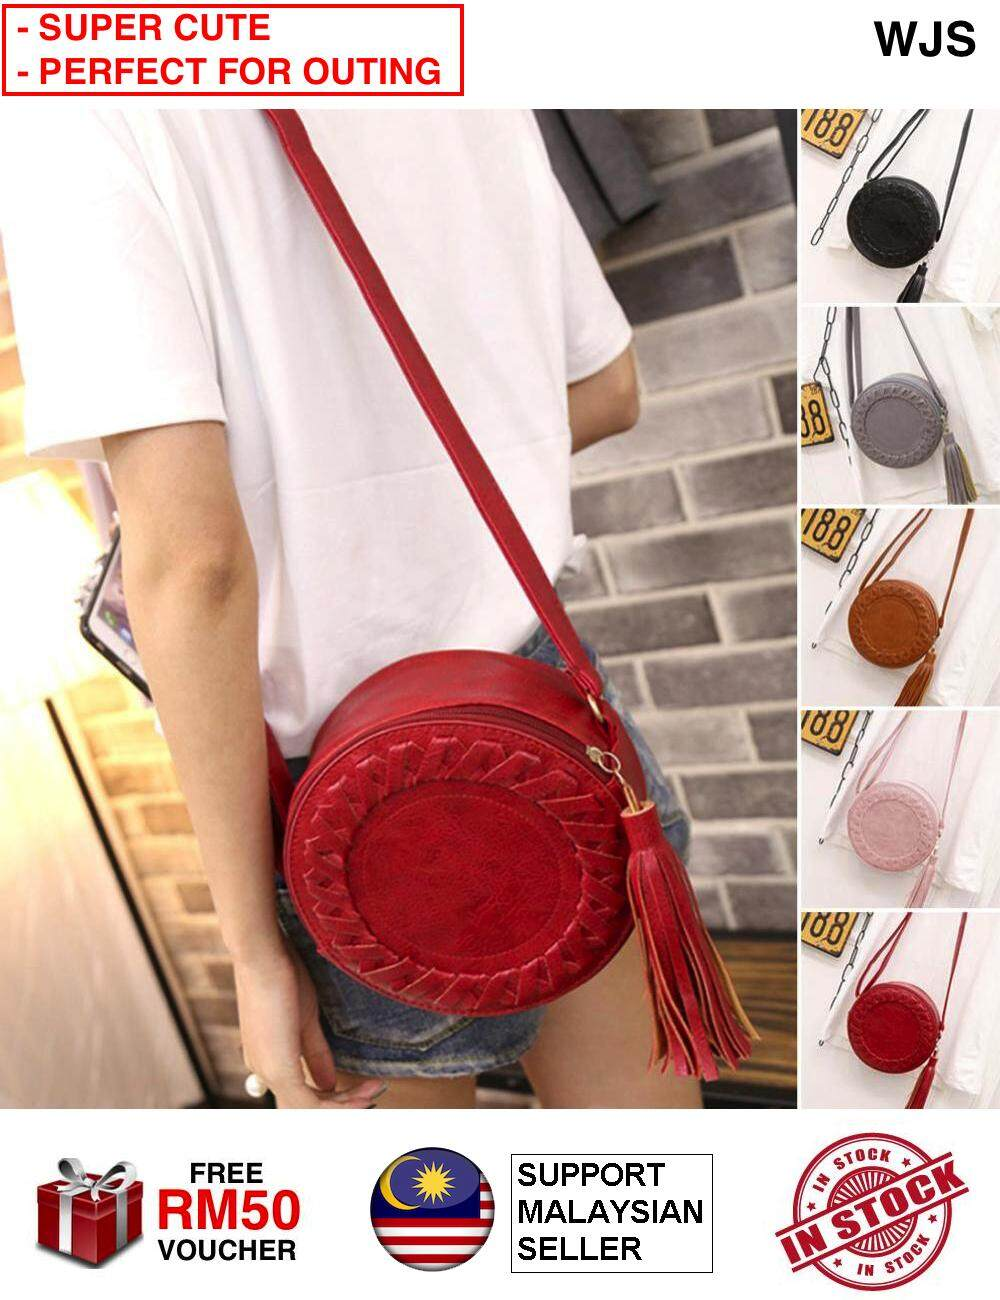 (IDEAL FOR ANY OUTING) WJS Women Round Cute Tassel Handbag Shoulder Bag PU Leather Cross Body Bag Hand Bag Sling Round Weave Zipper [FREE RM50 VOUCHER]